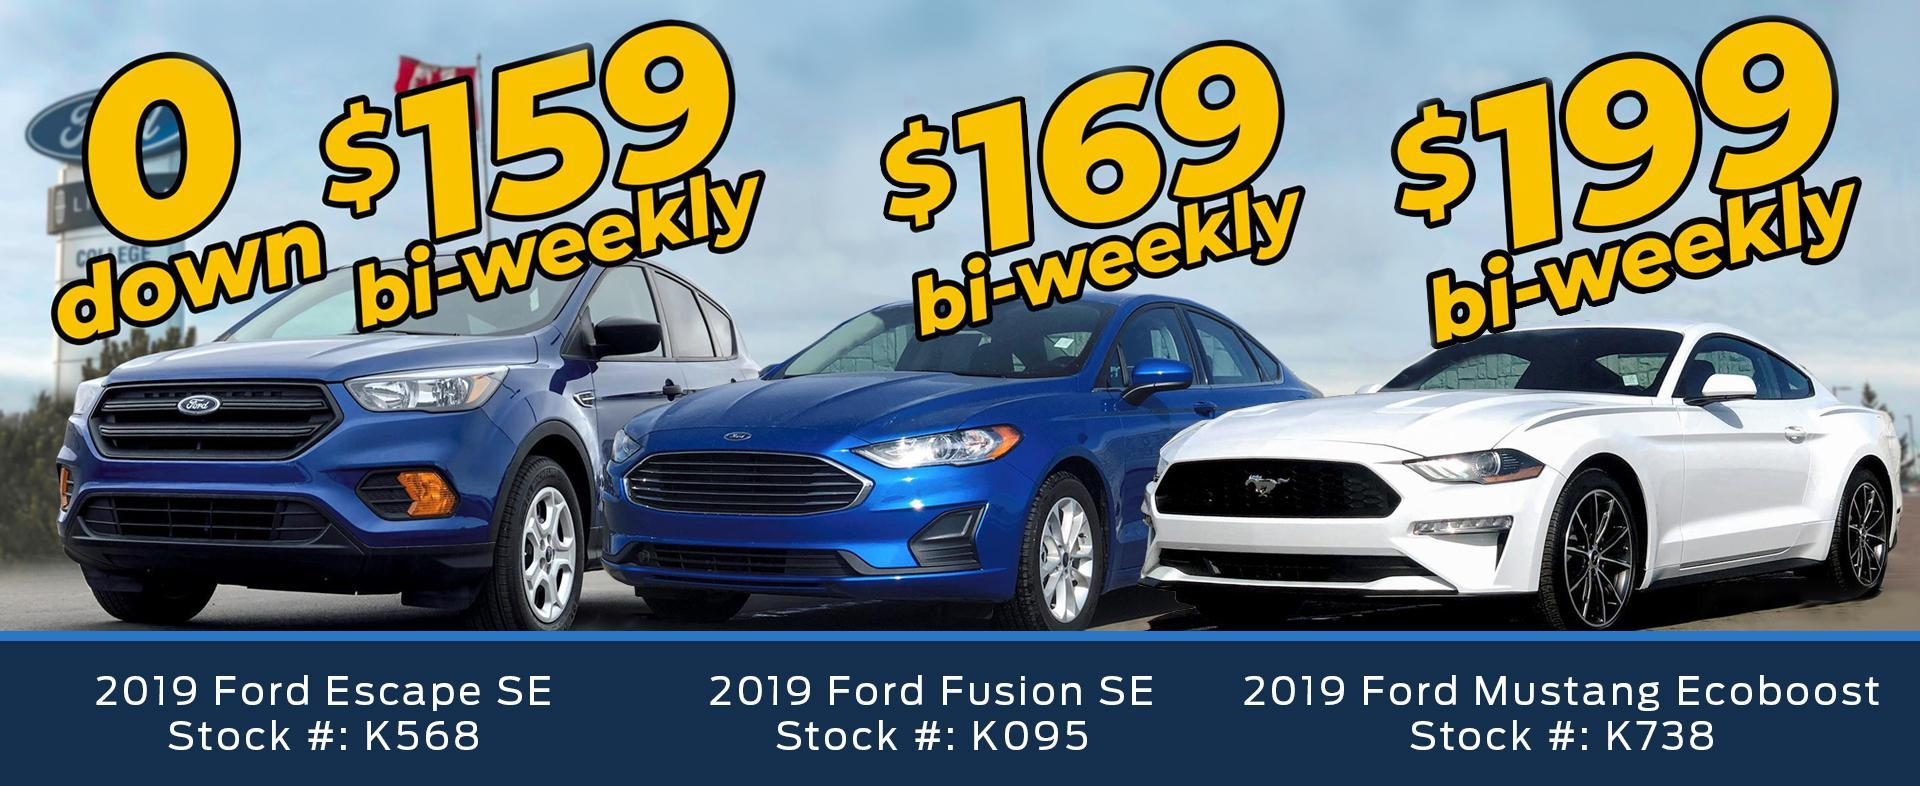 2019 Vehicles Offers